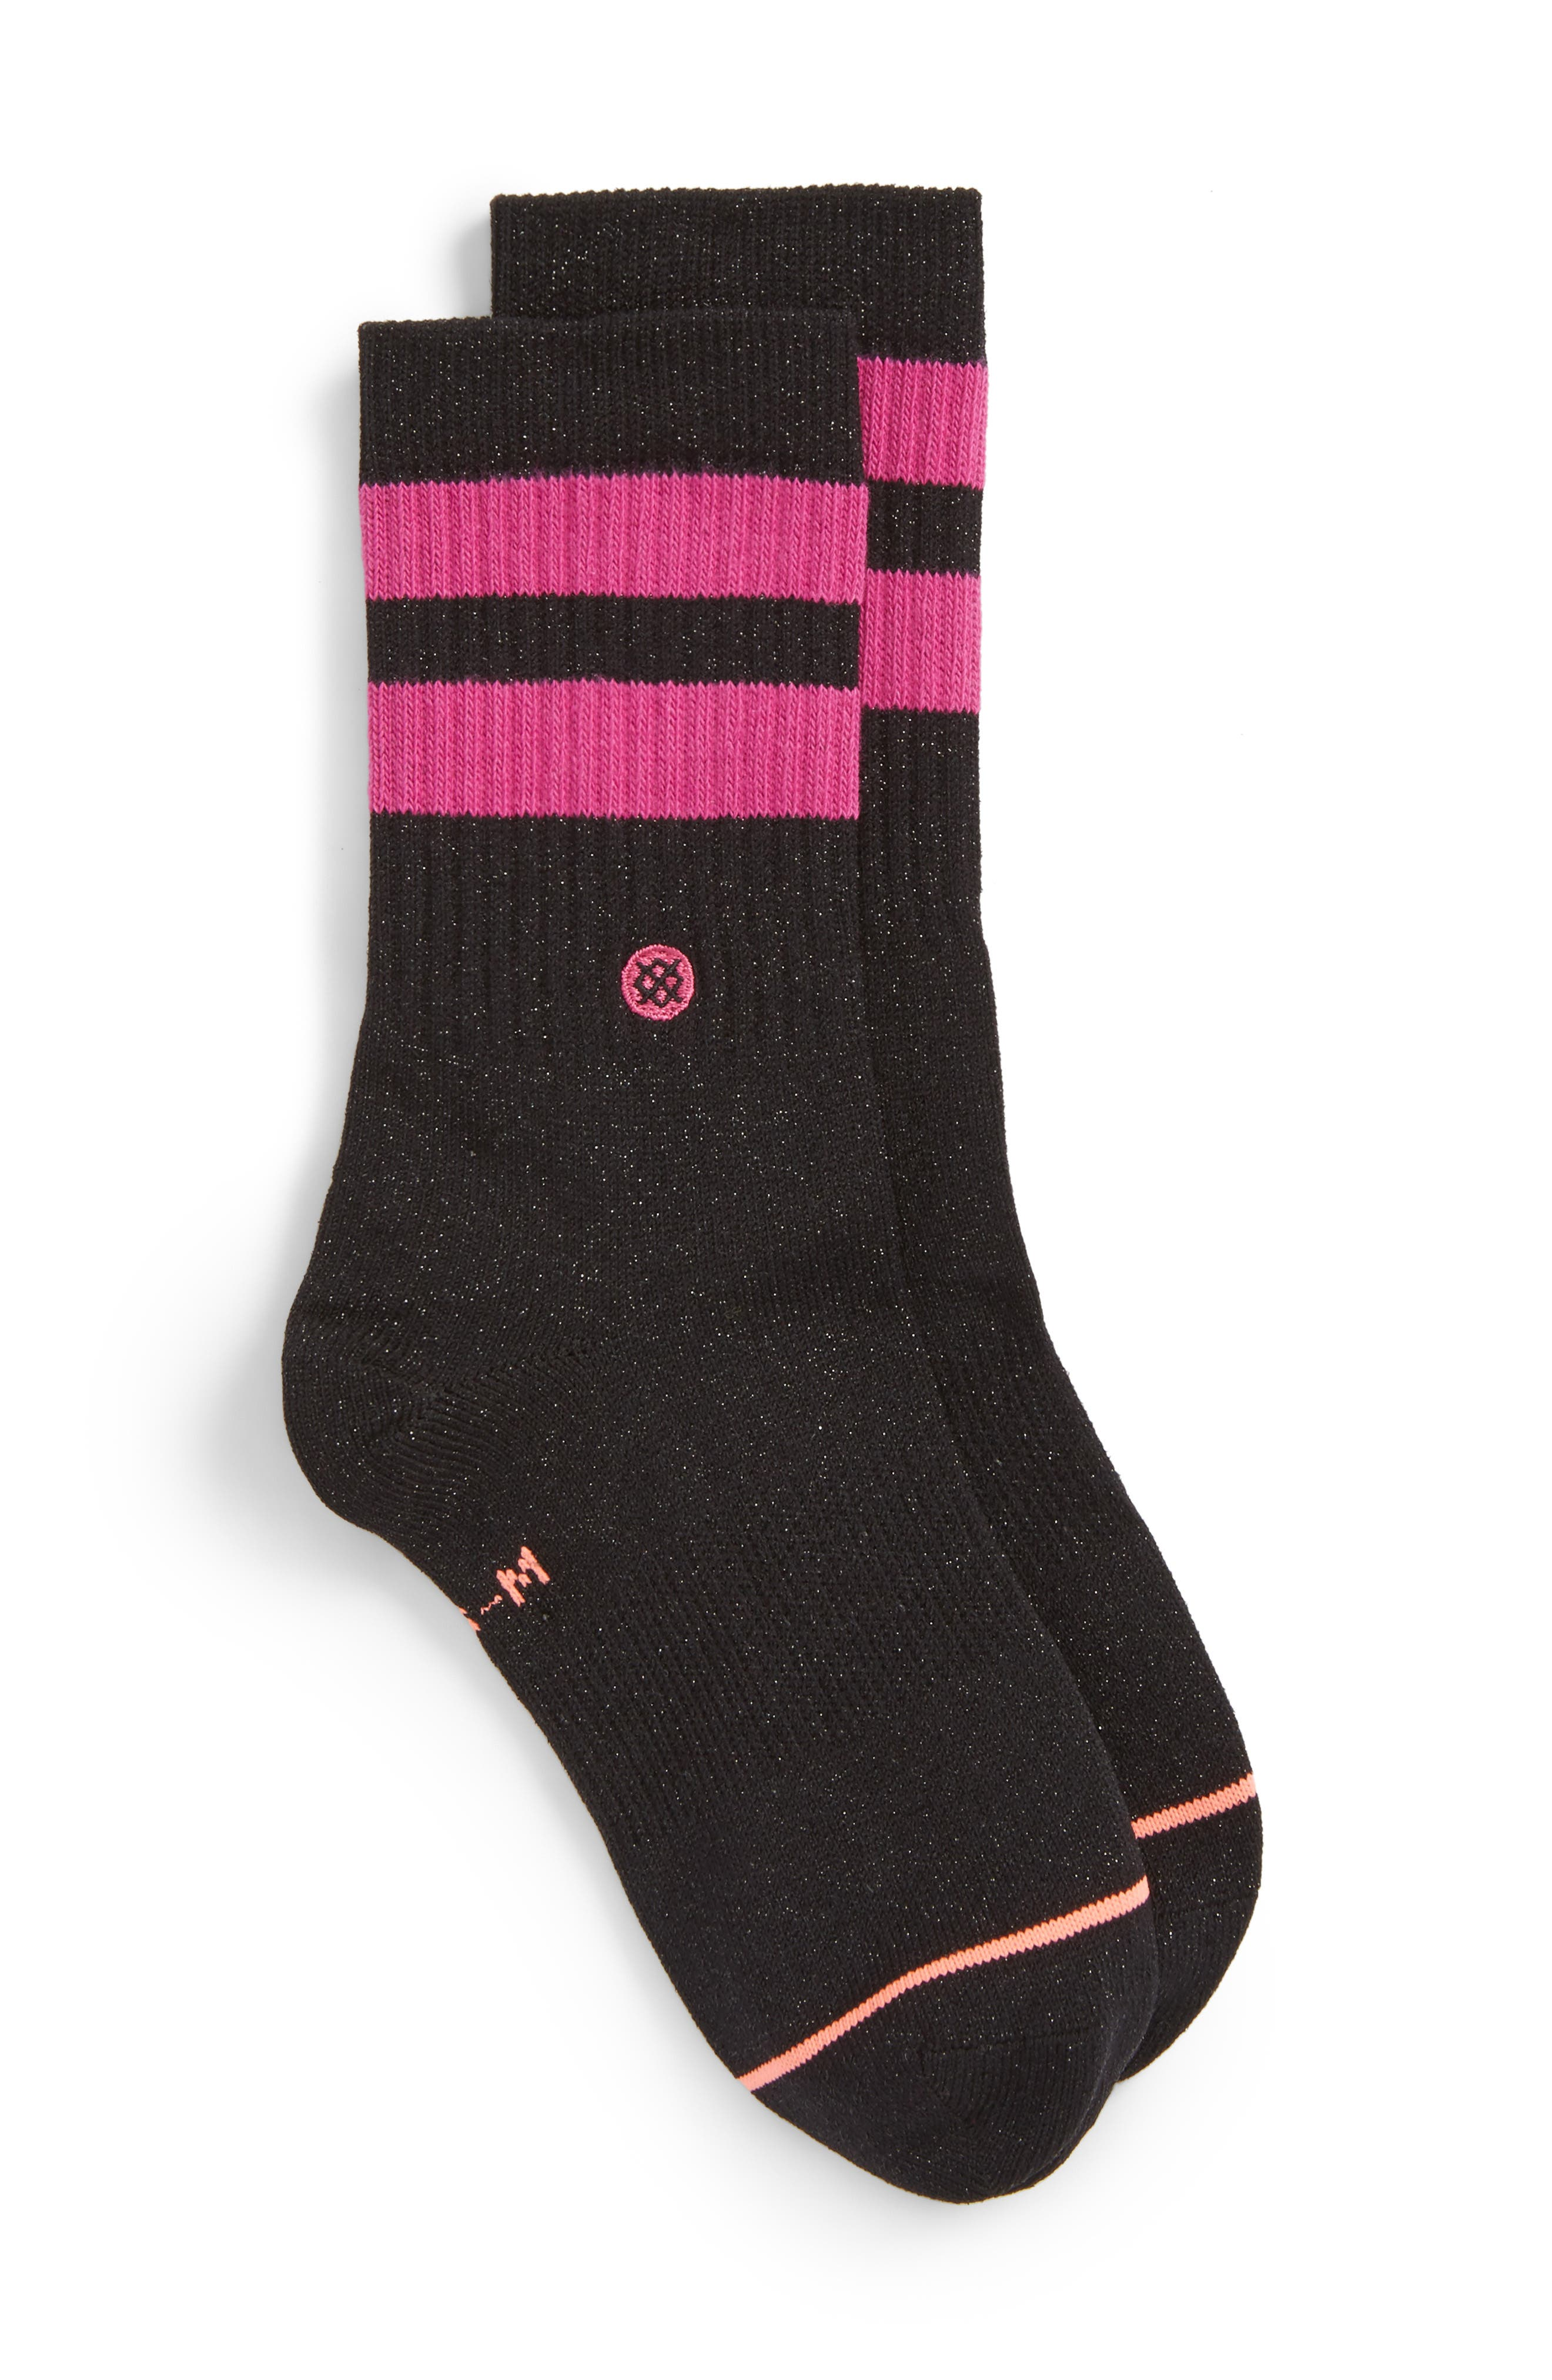 Harmony Crew Socks,                             Main thumbnail 1, color,                             Black